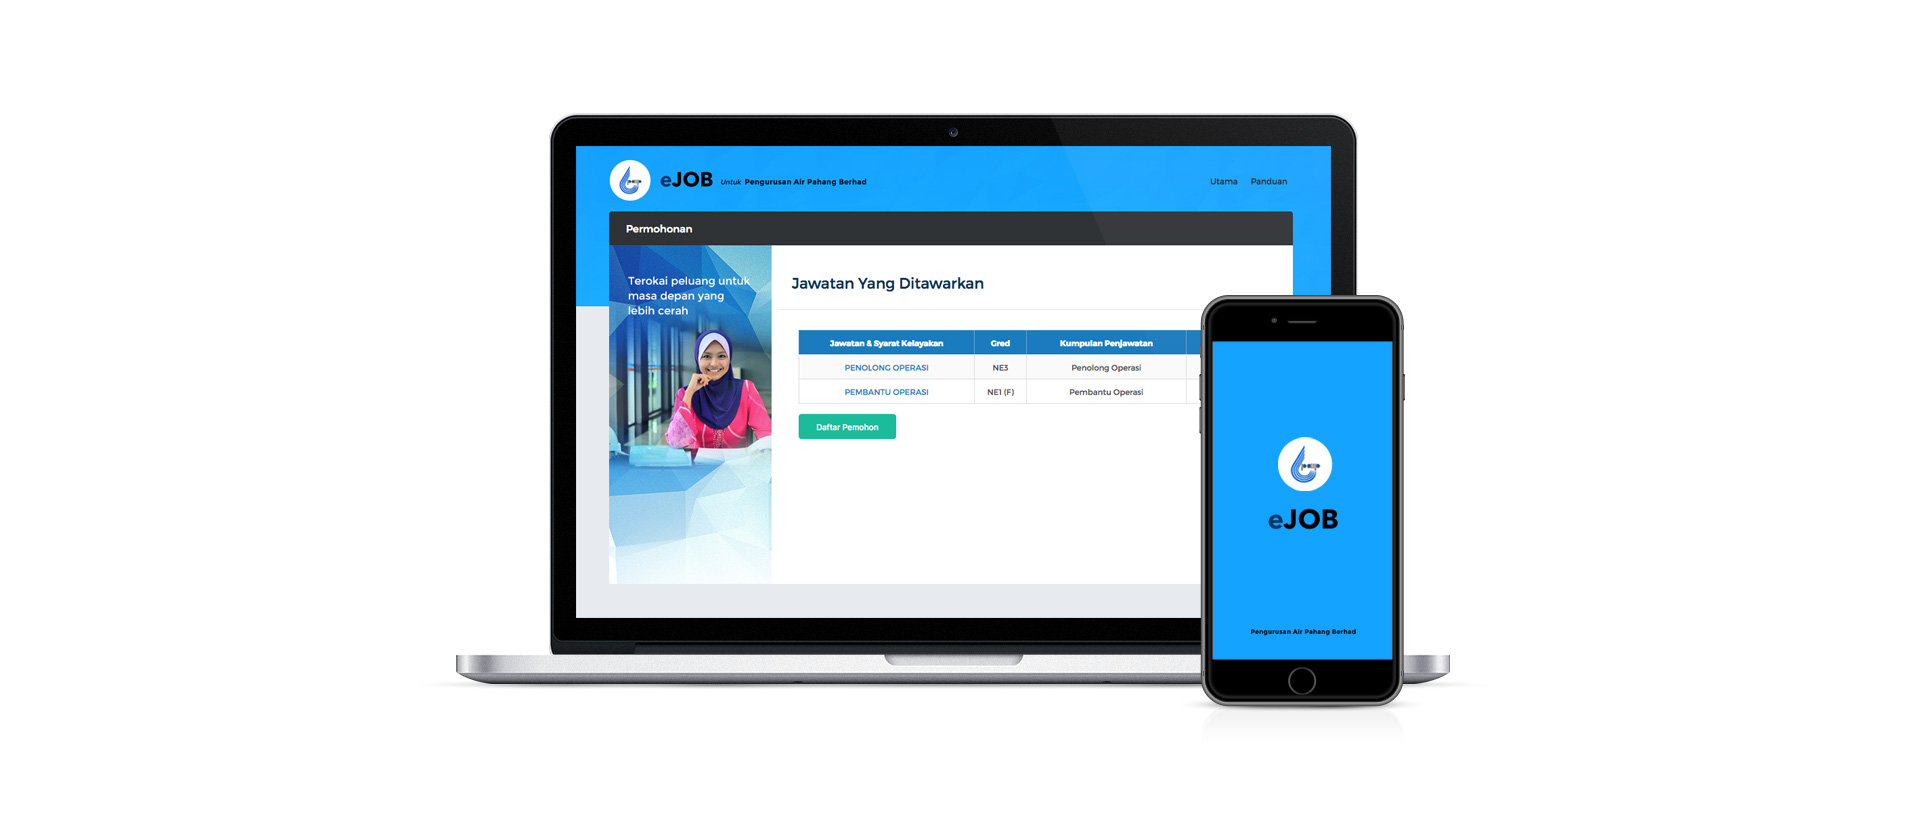 eJOB - eRecruitment Web App